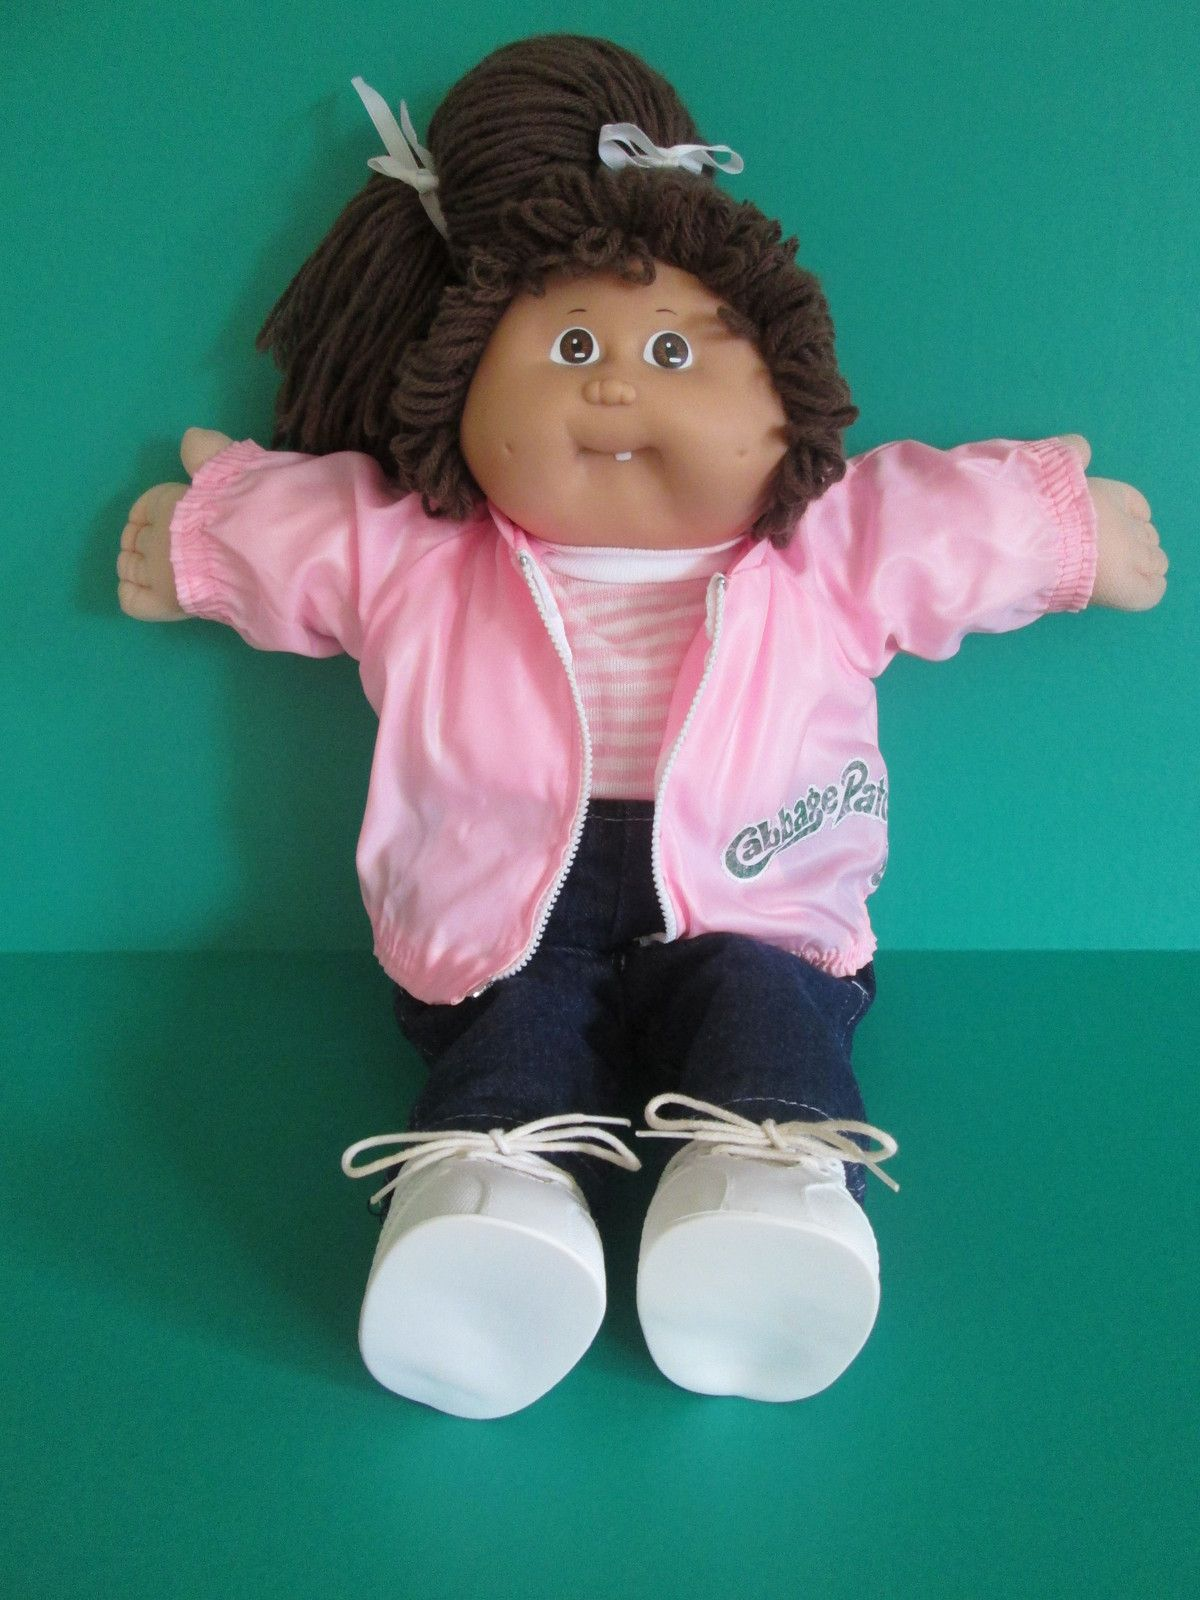 Cabbage Patch Girl Doll 1985 Coleco Brown Eyes And Side Pony Hair With Outfit Vintage Cabbage Patch Dolls Cabbage Patch Babies Black Cabbage Patch Doll